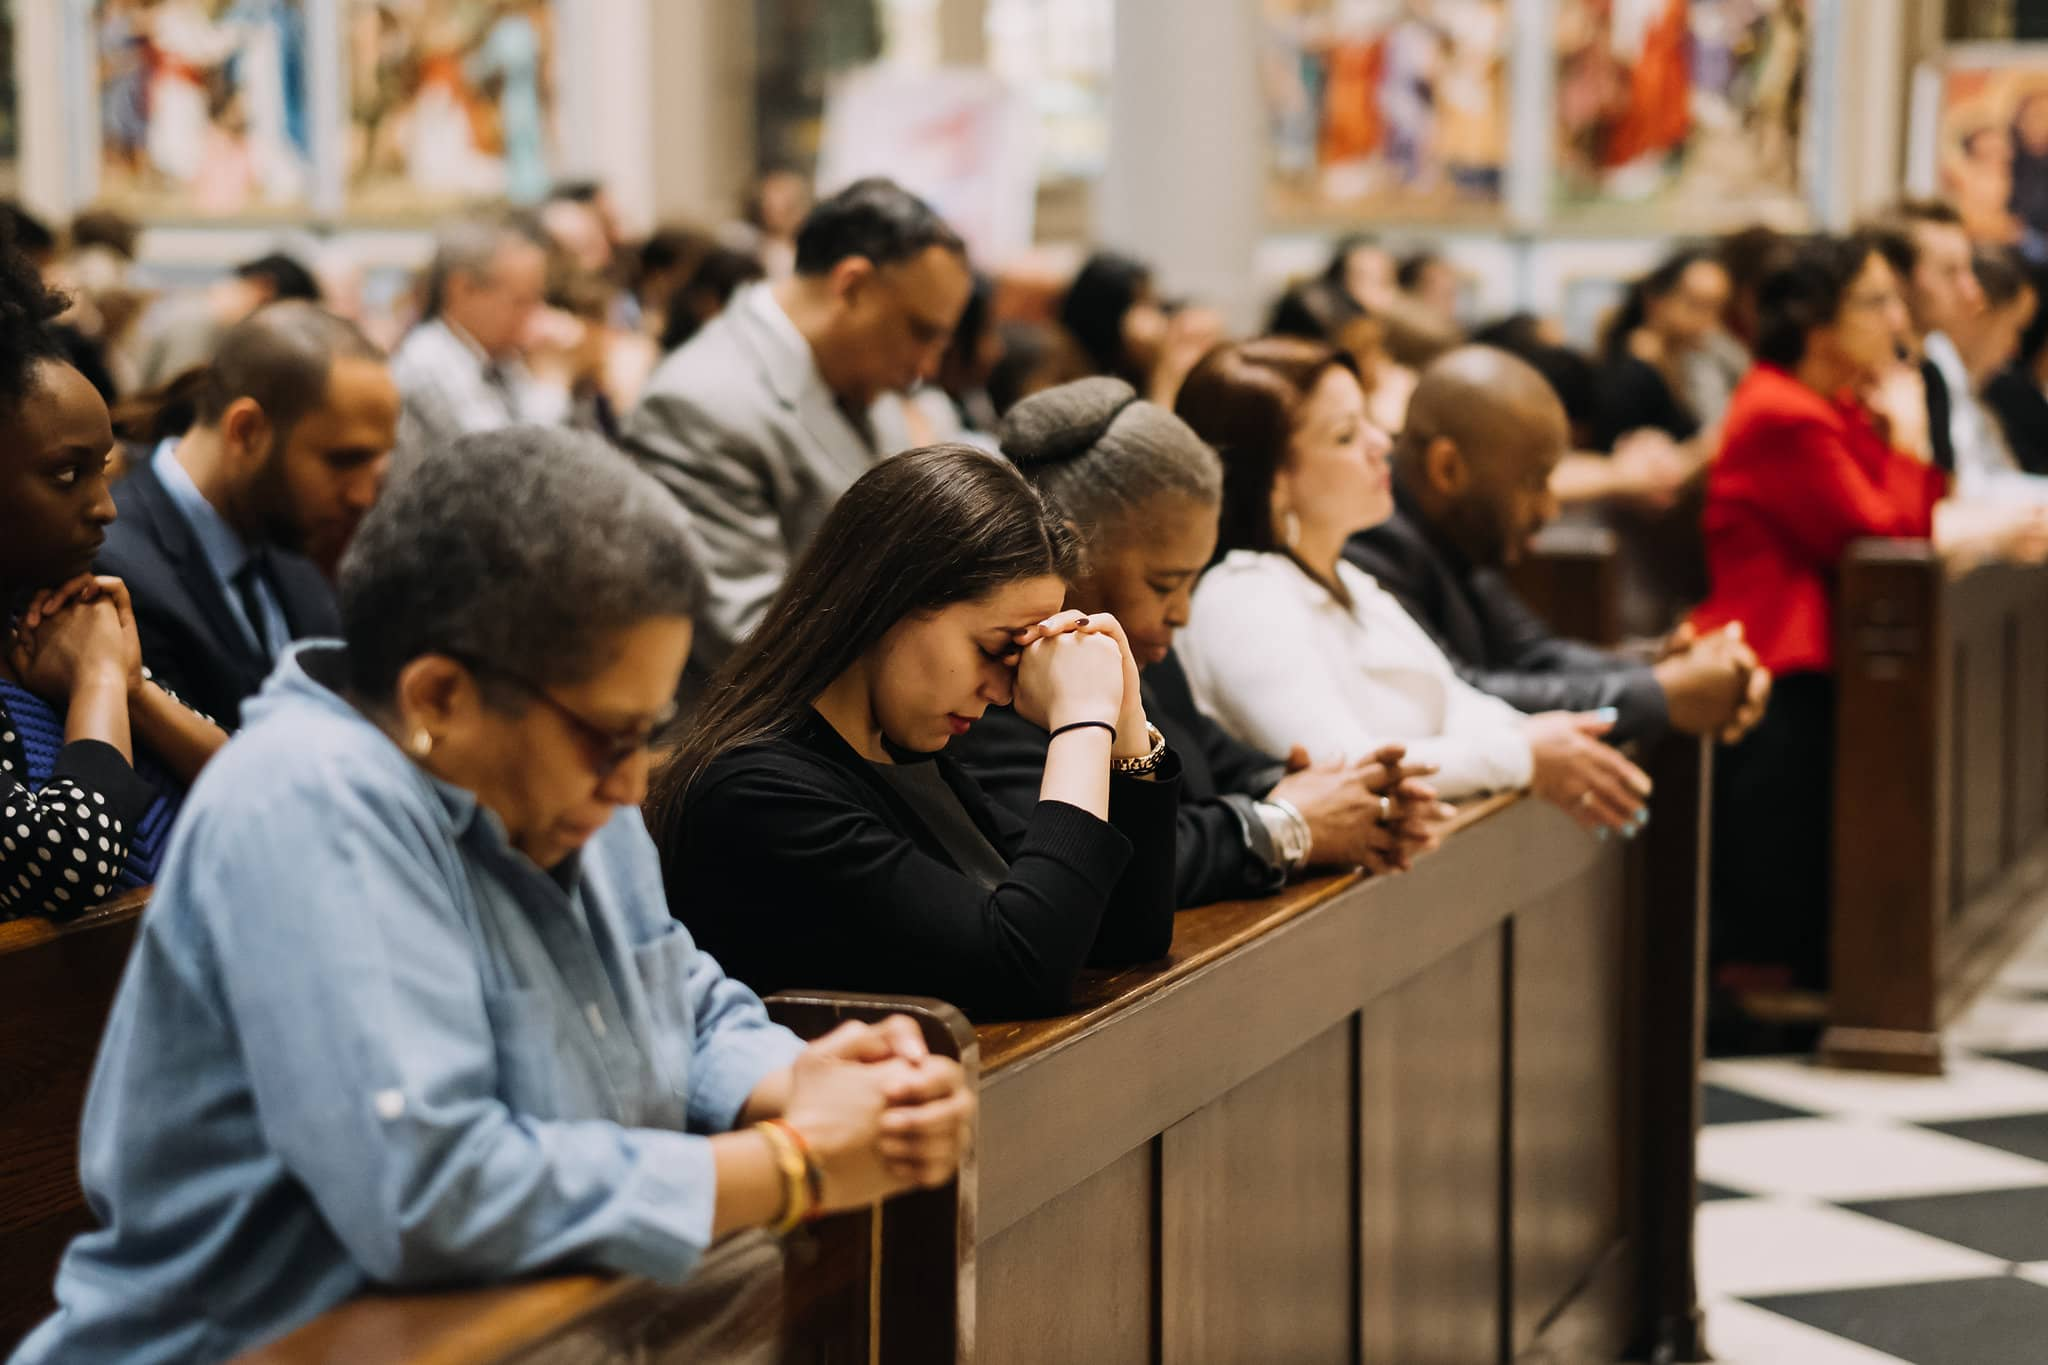 deep-prayer-community-mass-st-francis-de-sales-church-new-york-city.jpg